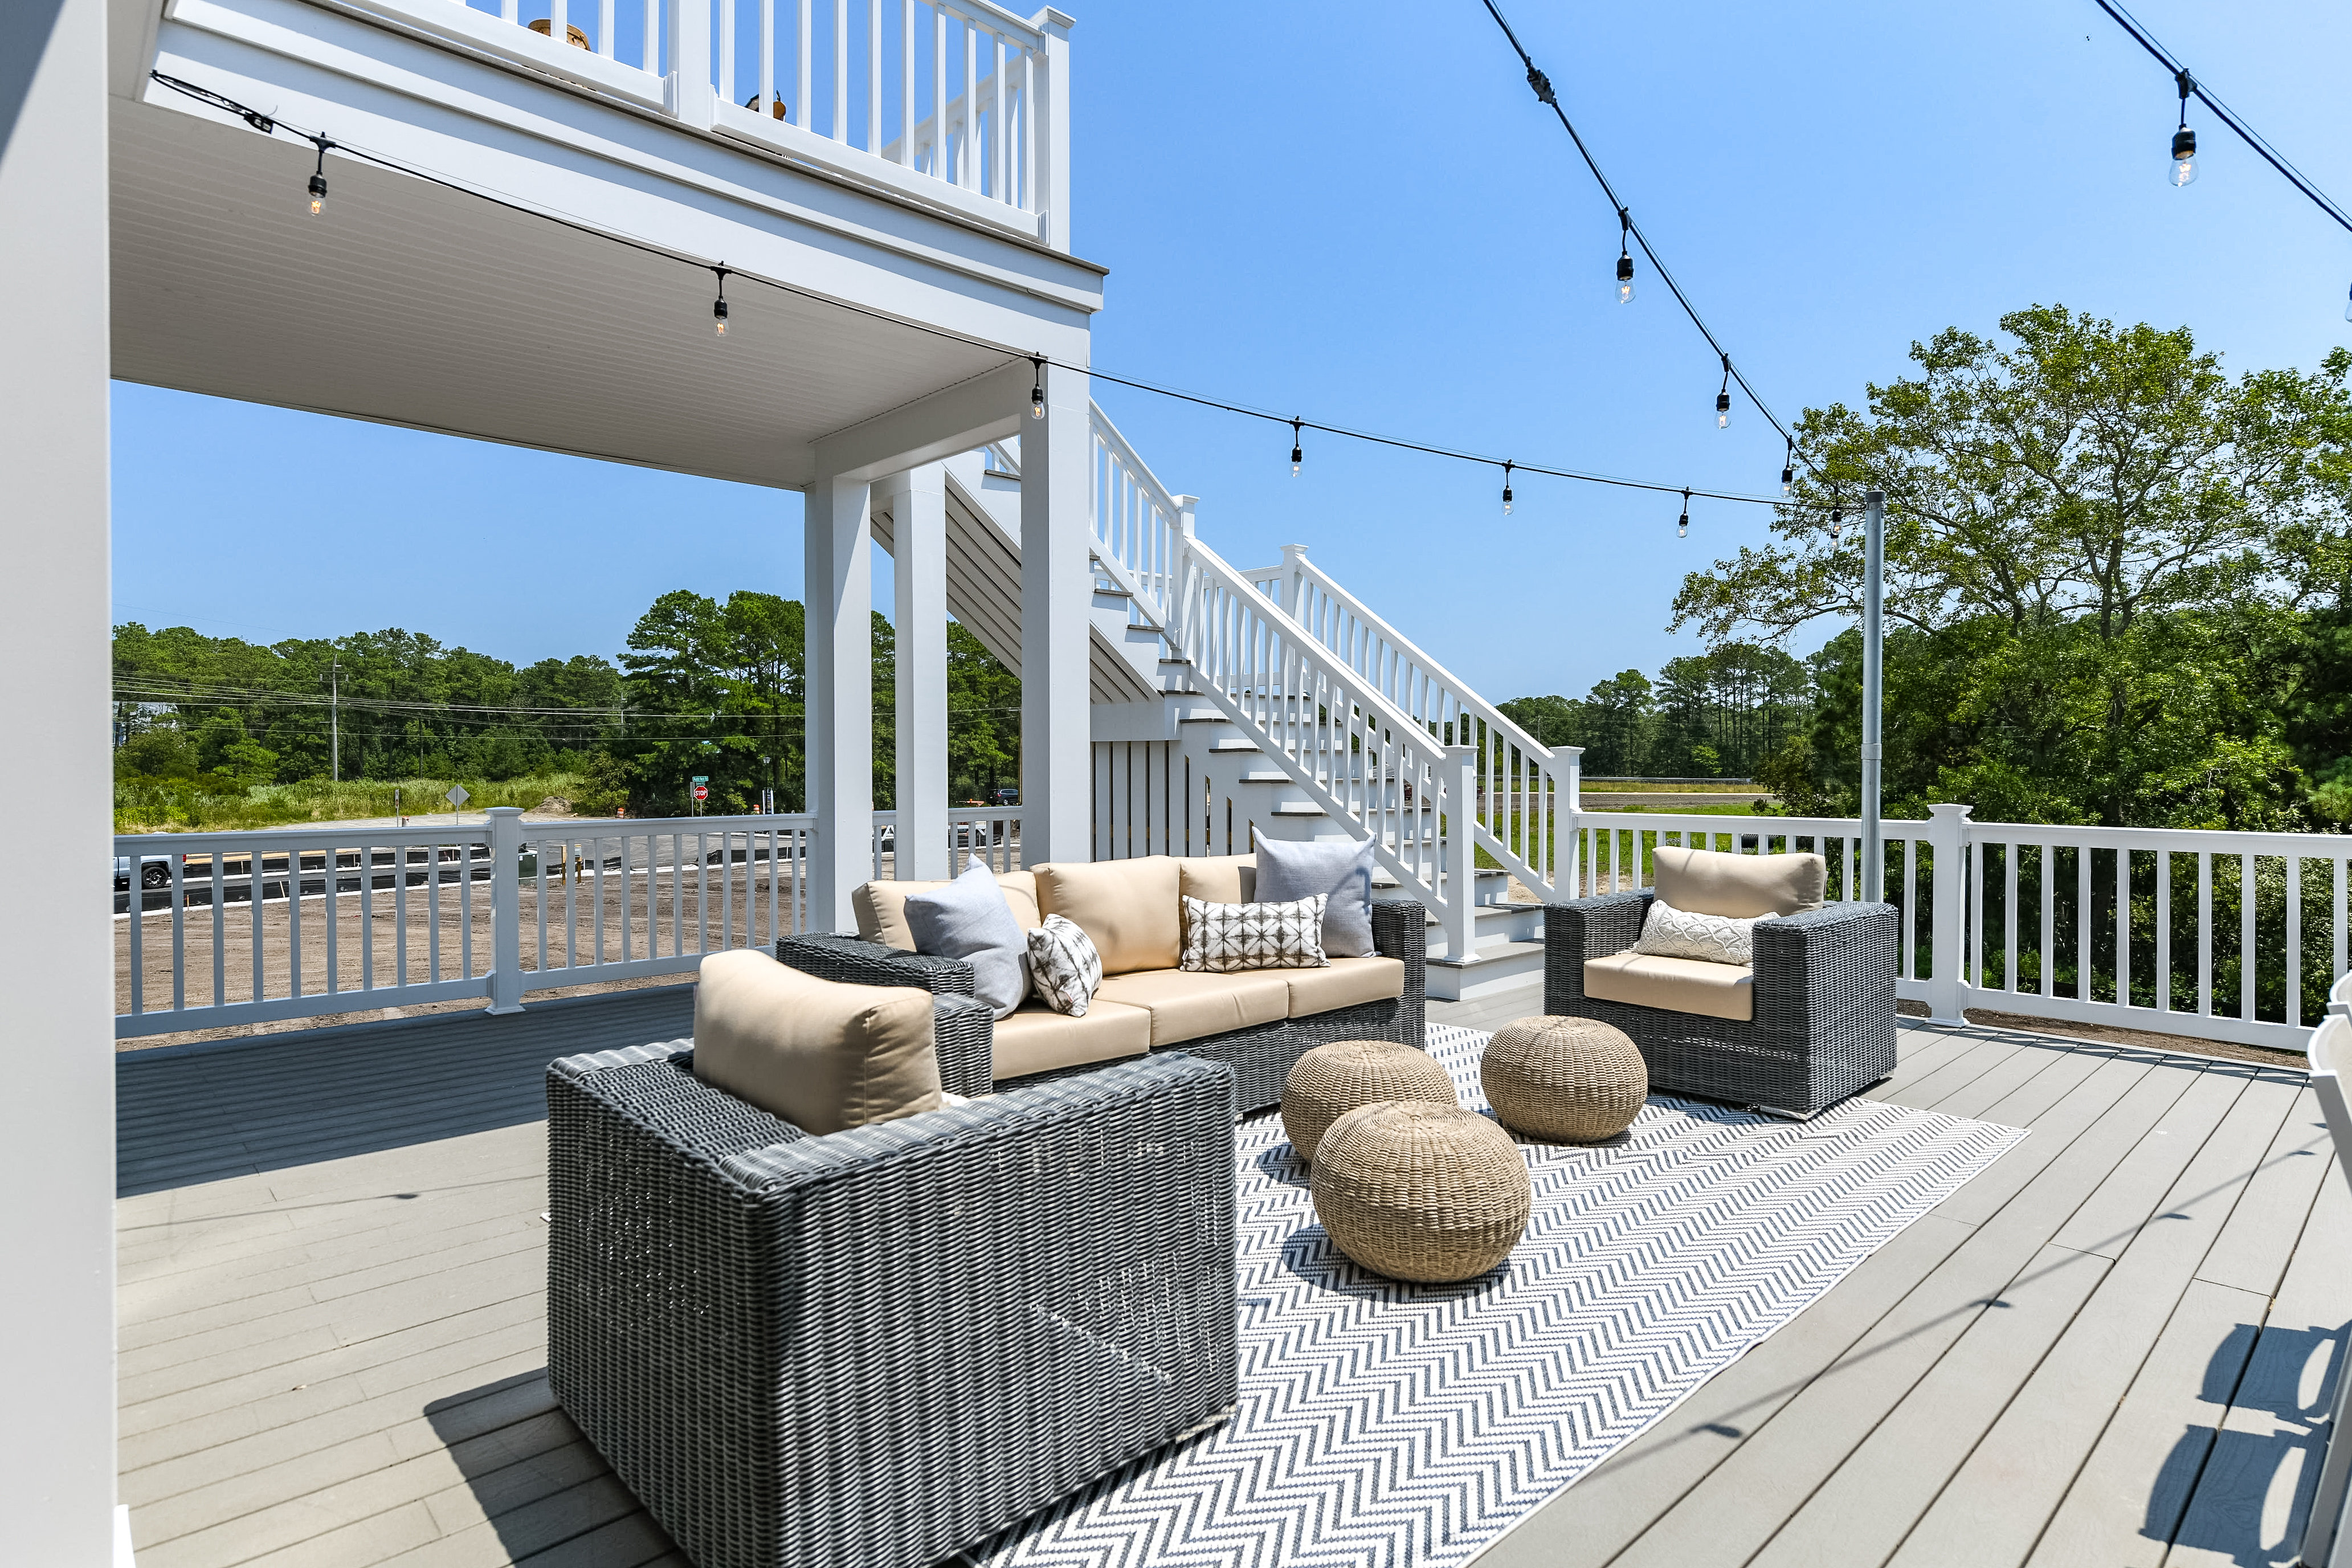 View of Deck,Furniture and Stairs to Upper Level Decks